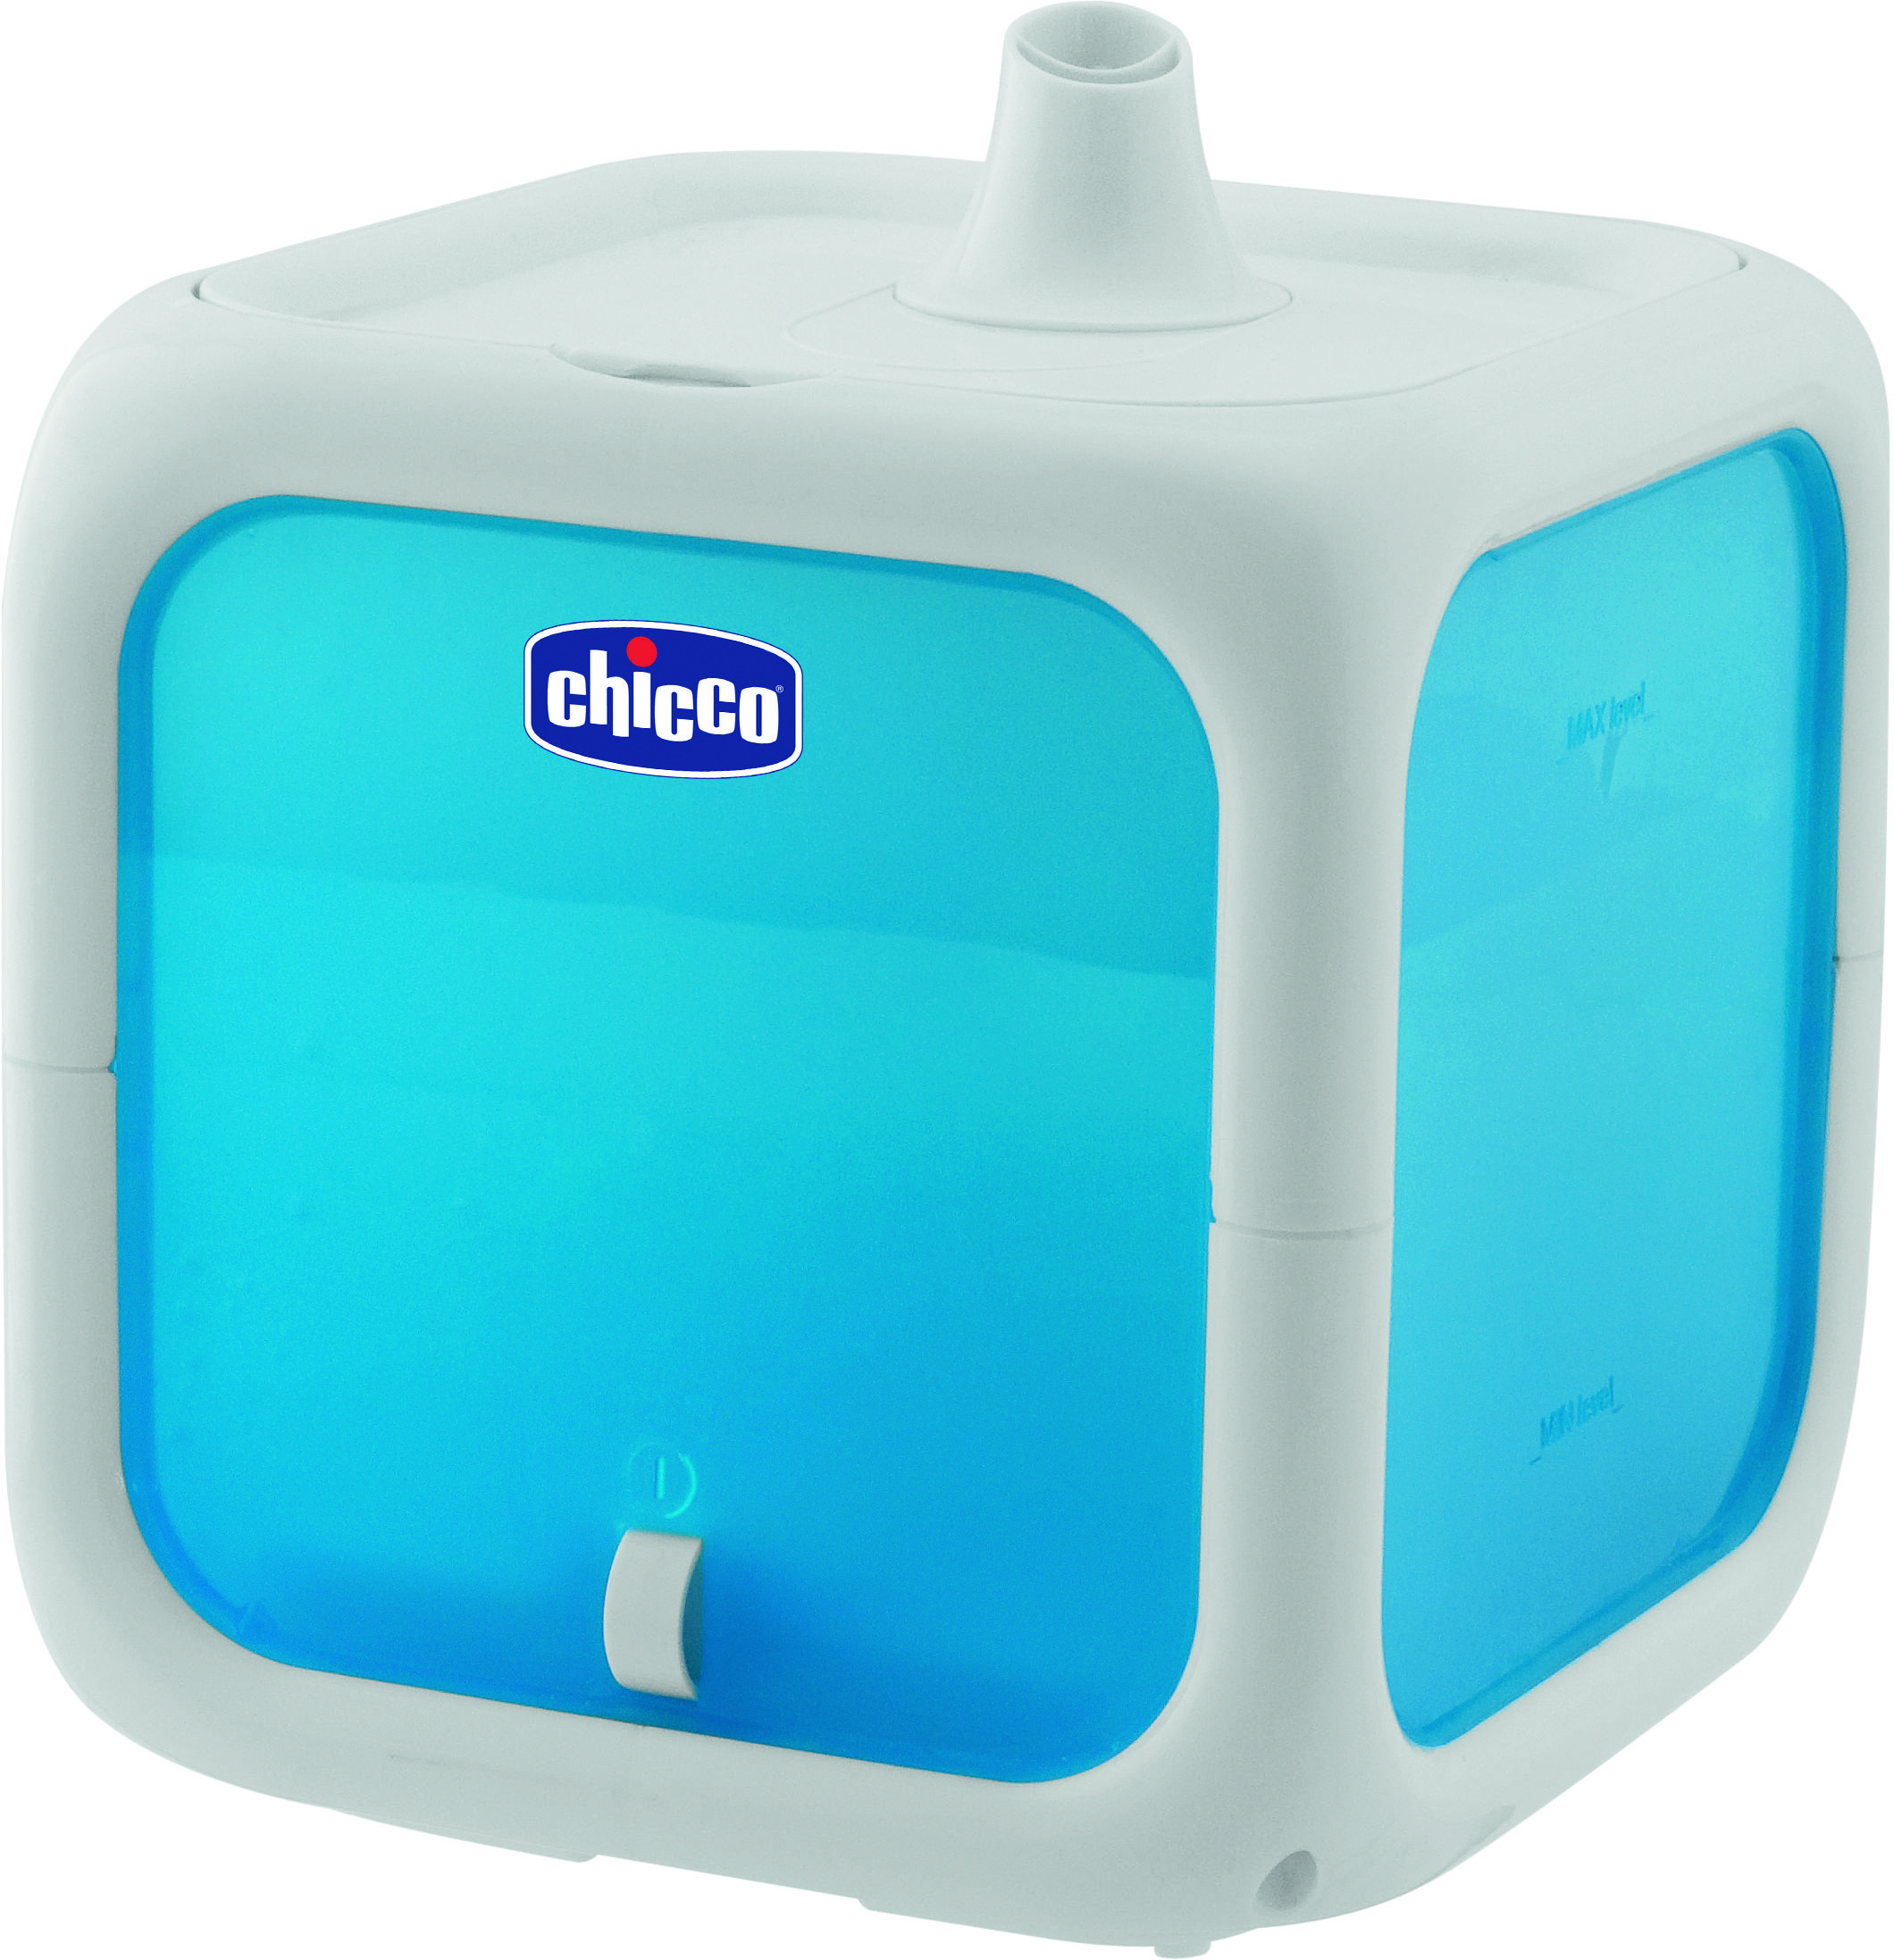 Chicco Humidifier Buy Baby Care Products in India Flipkart.com #0675A2